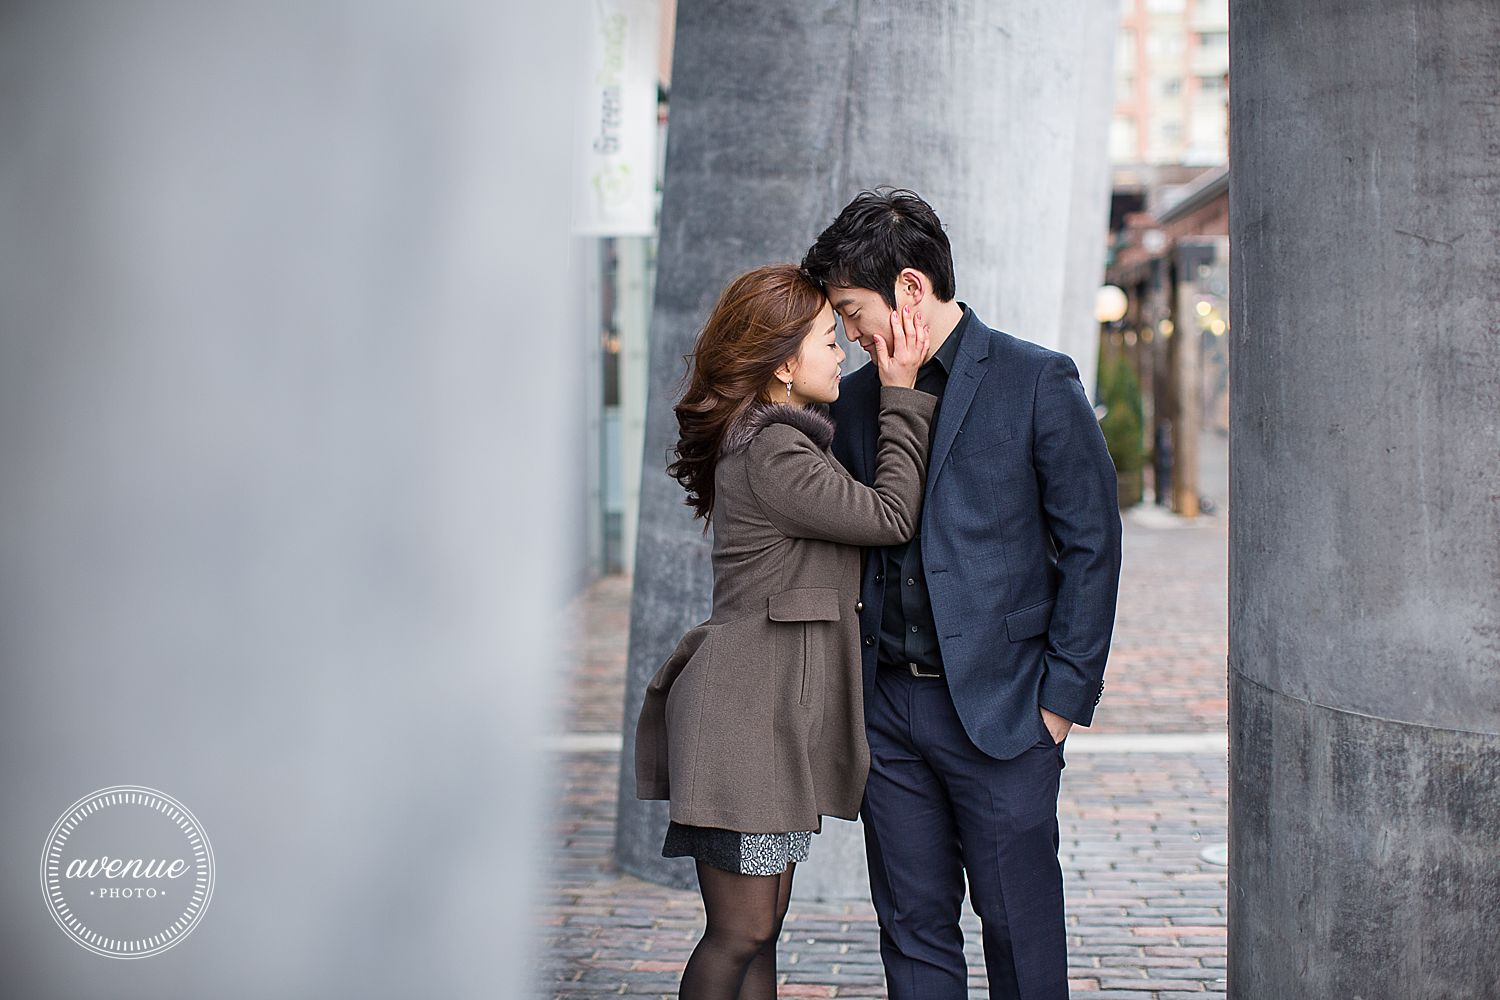 Distillery District Engagement Photos / Avenue Photo